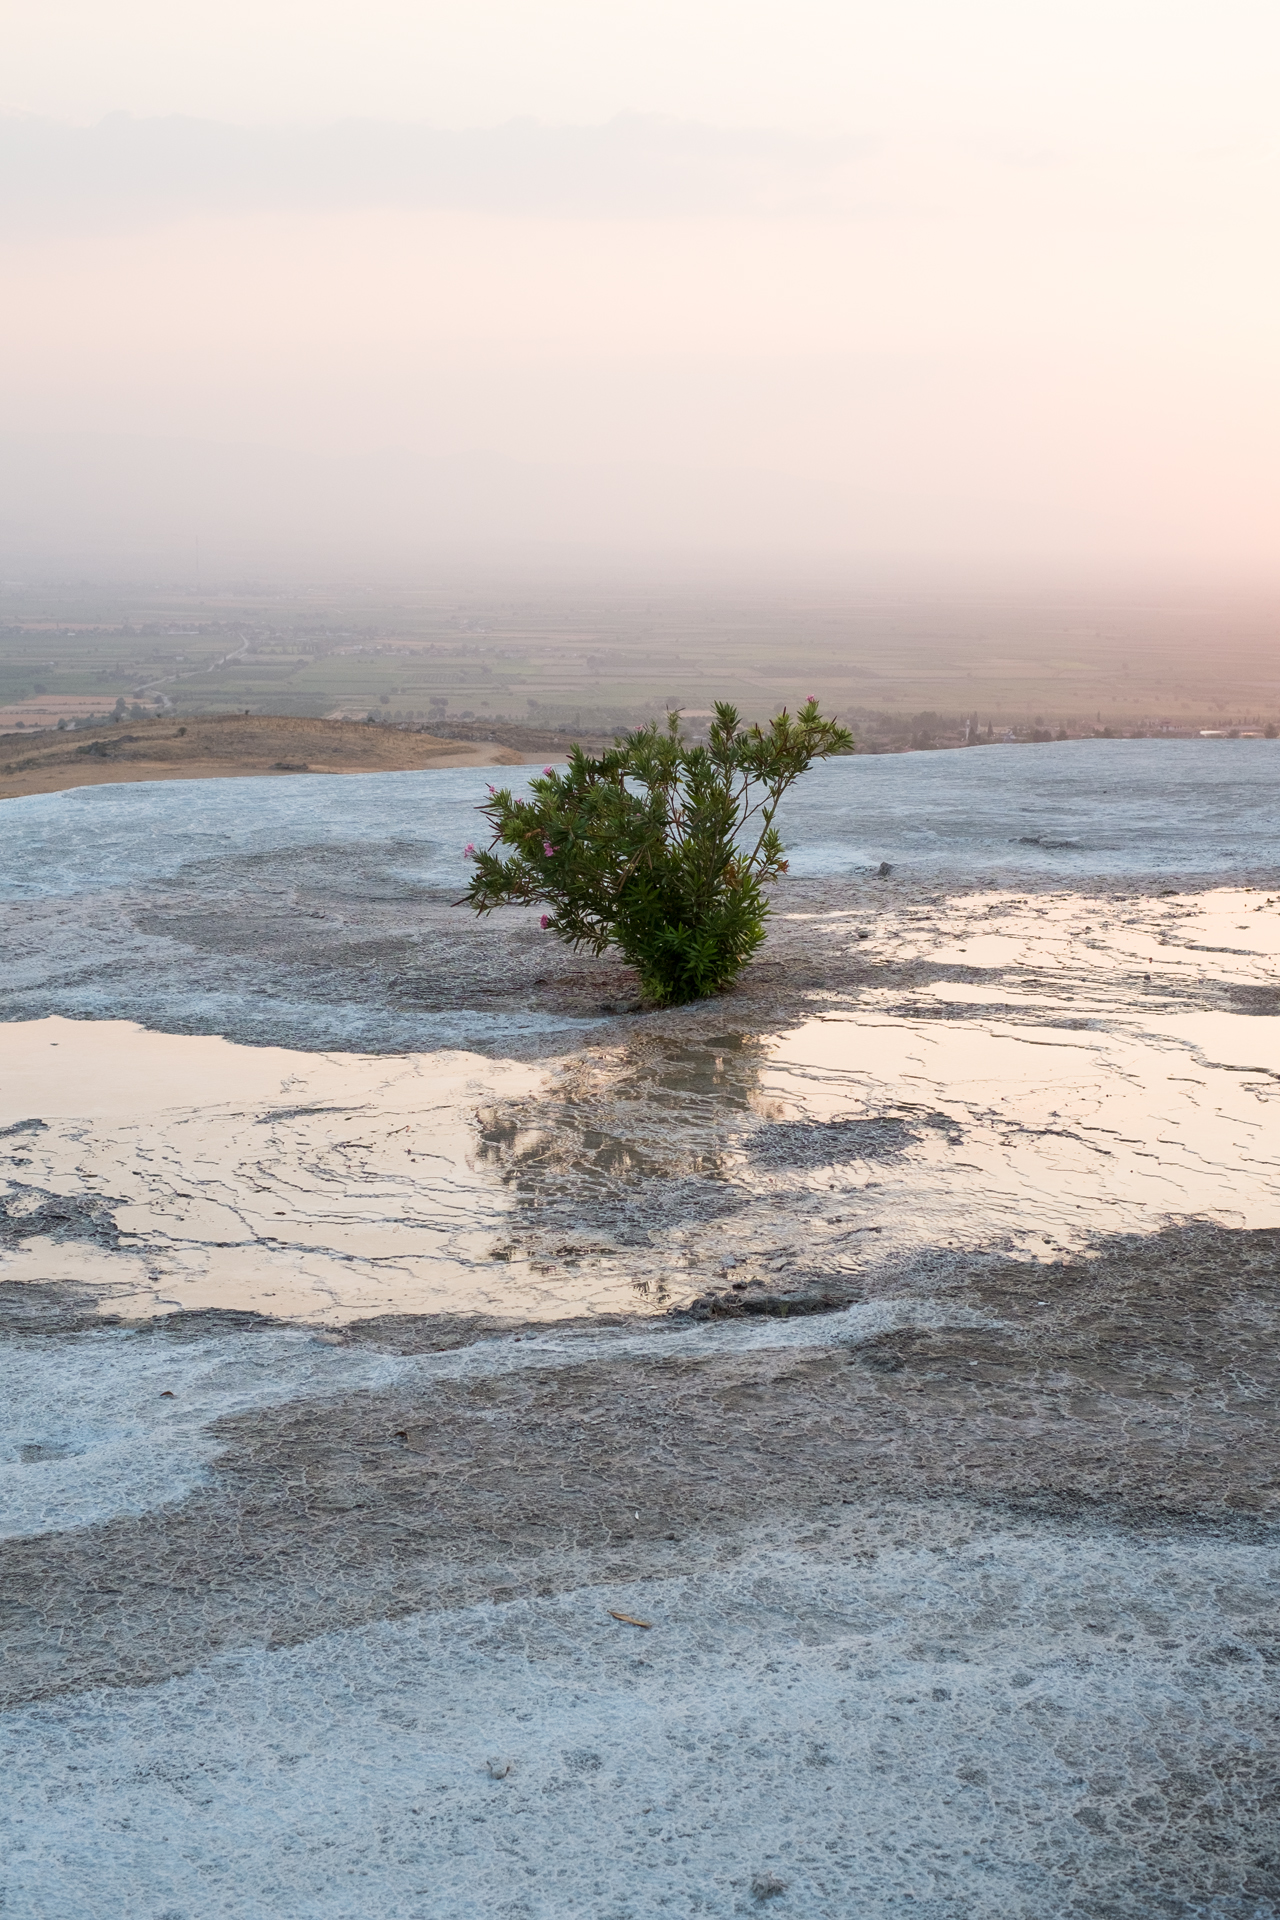 Imaginary Day : Pamukkale 049   pigment print, framed  60 x 40cm, 2013